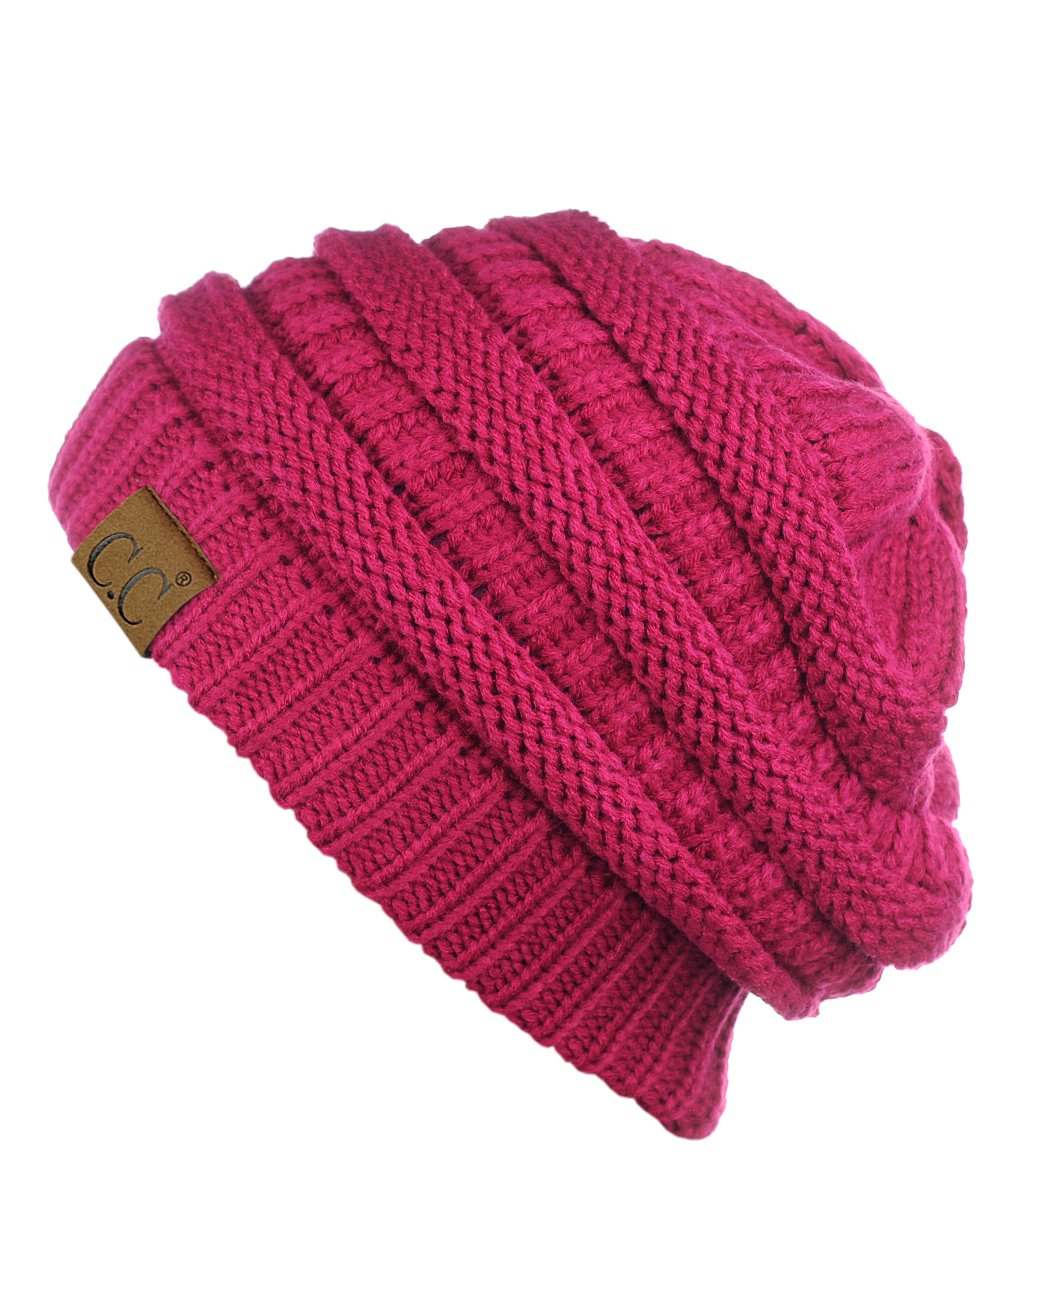 C.C Trendy Warm Chunky Soft Stretch Cable Knit Beanie Skully, Hot Pink